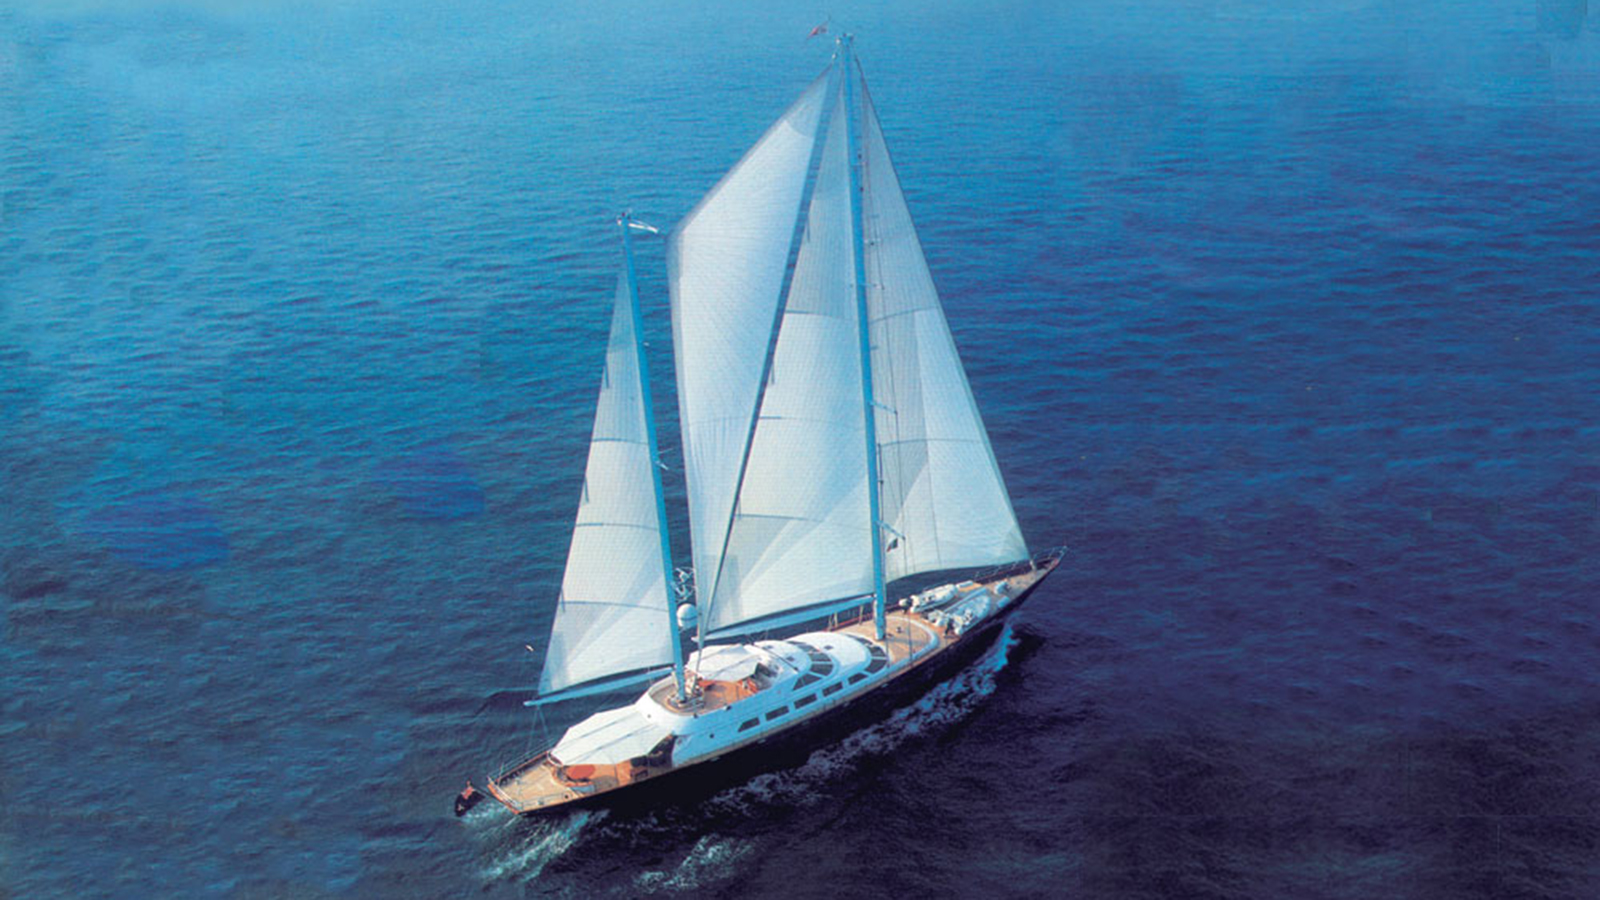 the-perini-navi-sailing-yacht-piropo-iv-is-currently-offered-for-sale